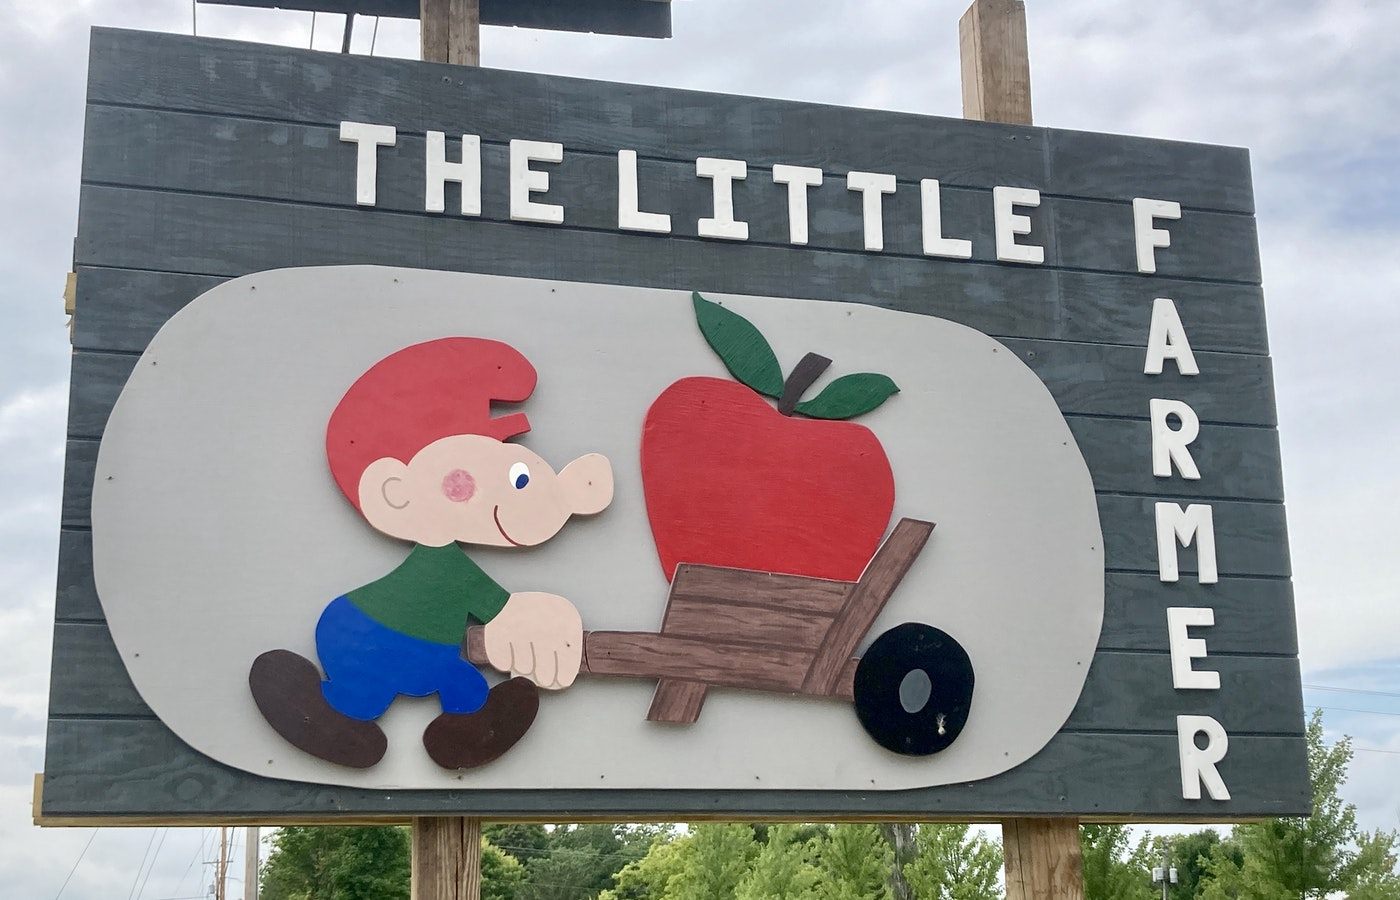 The Little Farmer in Malone has apple picking, homemade pies, and goats for petting. (Photo by Susan Lampert Smith)